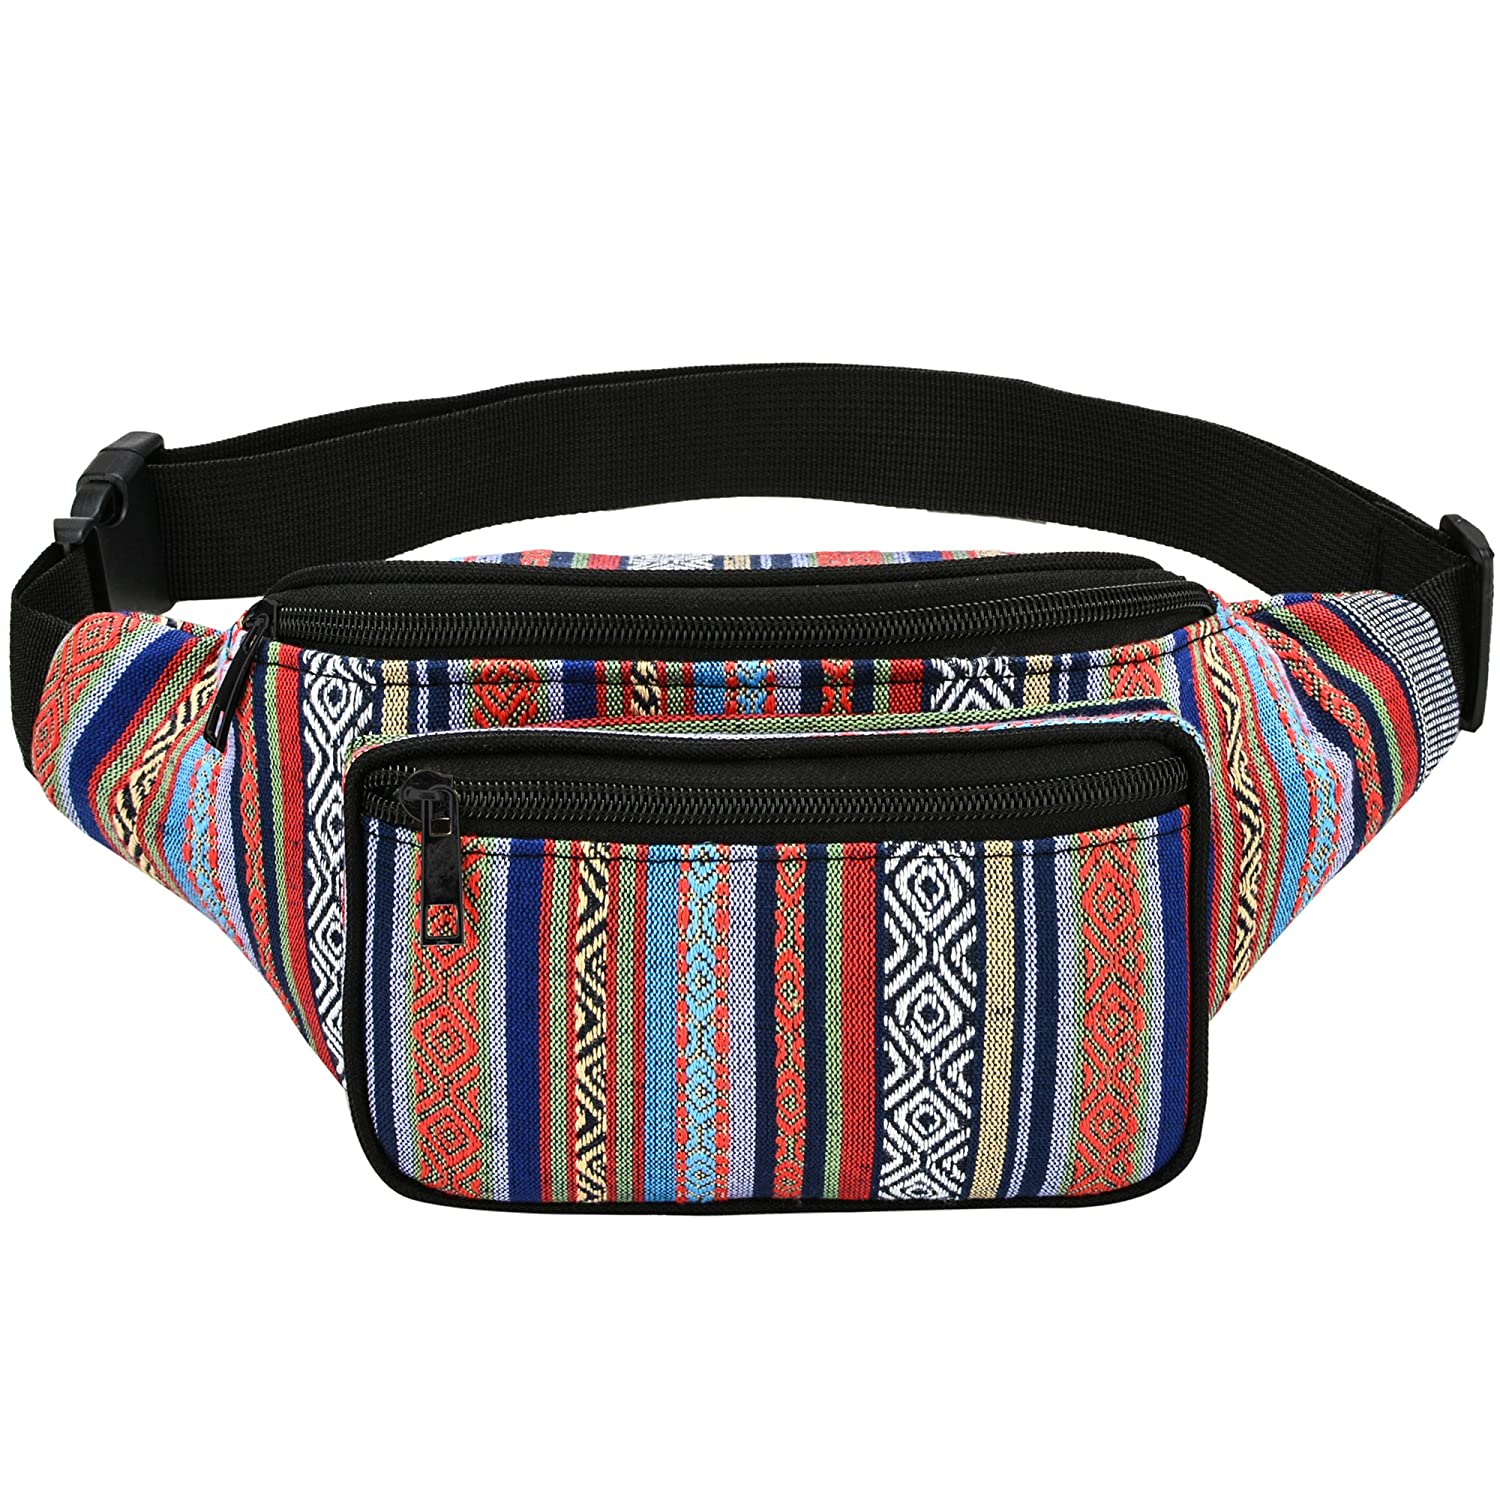 Kayhoma Boho Fanny Pack Stripe Festival Rave Retro Vintage Bum Bags Travel Hiking Waist Belt Purse yb008